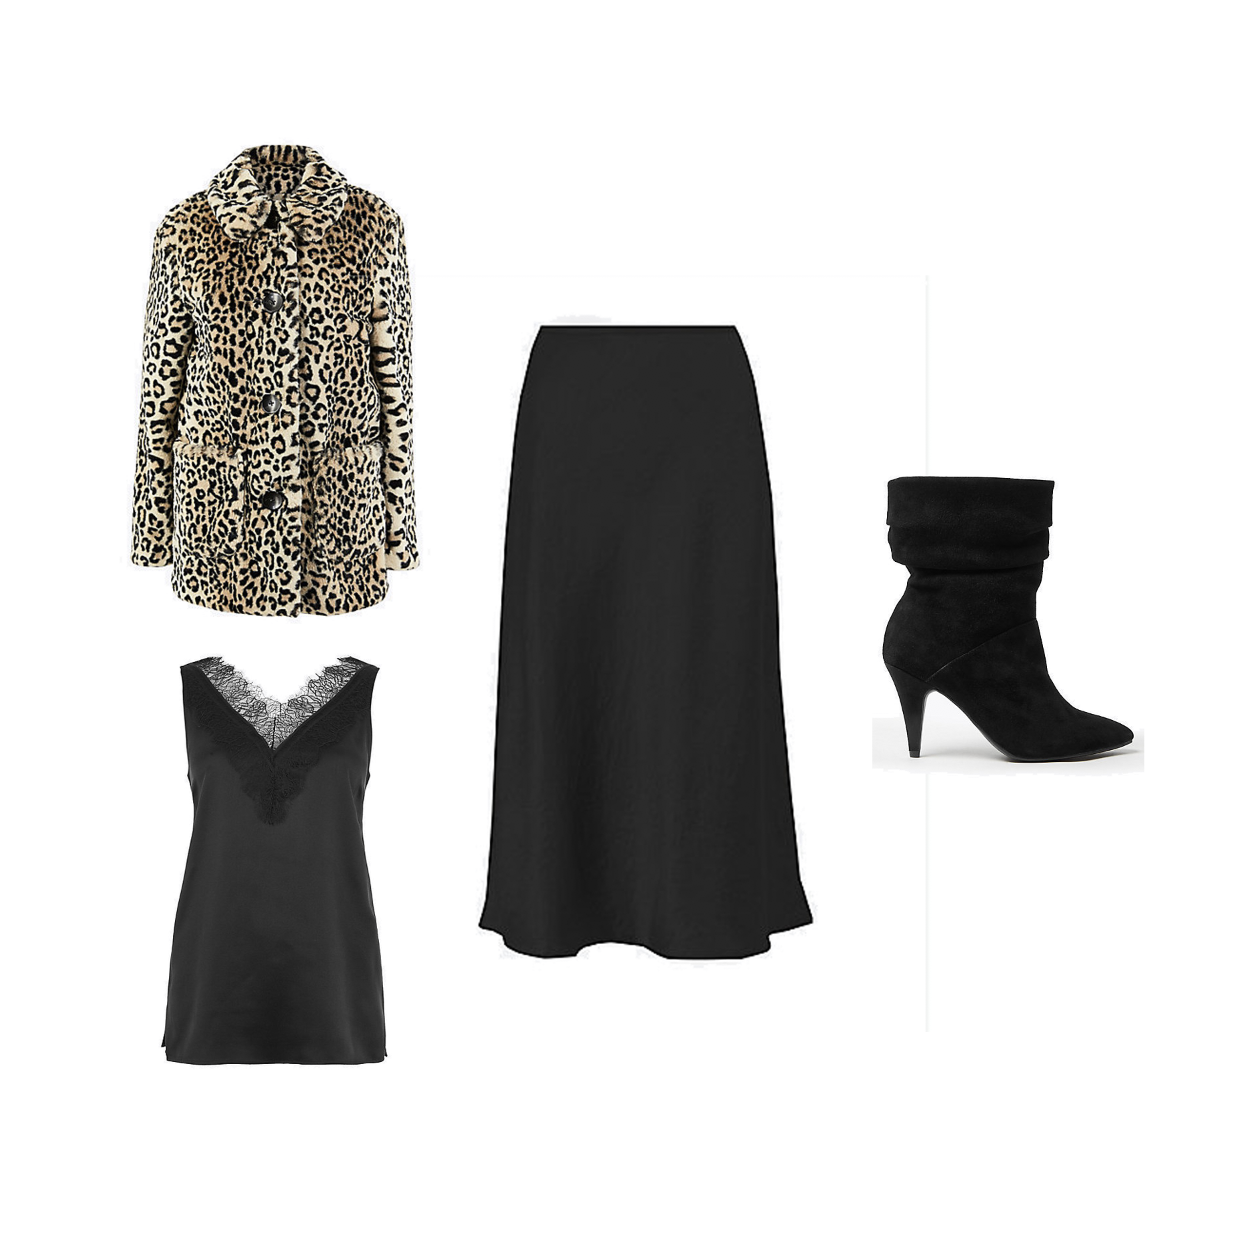 my midlife fashion, marks and Spencer party wear, party wear, marks and Spencer faux fur animal print coat, marks and Spencer pure silk lace trim camisole top, marks and Spencer slip midi skirt, marks and Spencer suede ruched pointed ankle boots